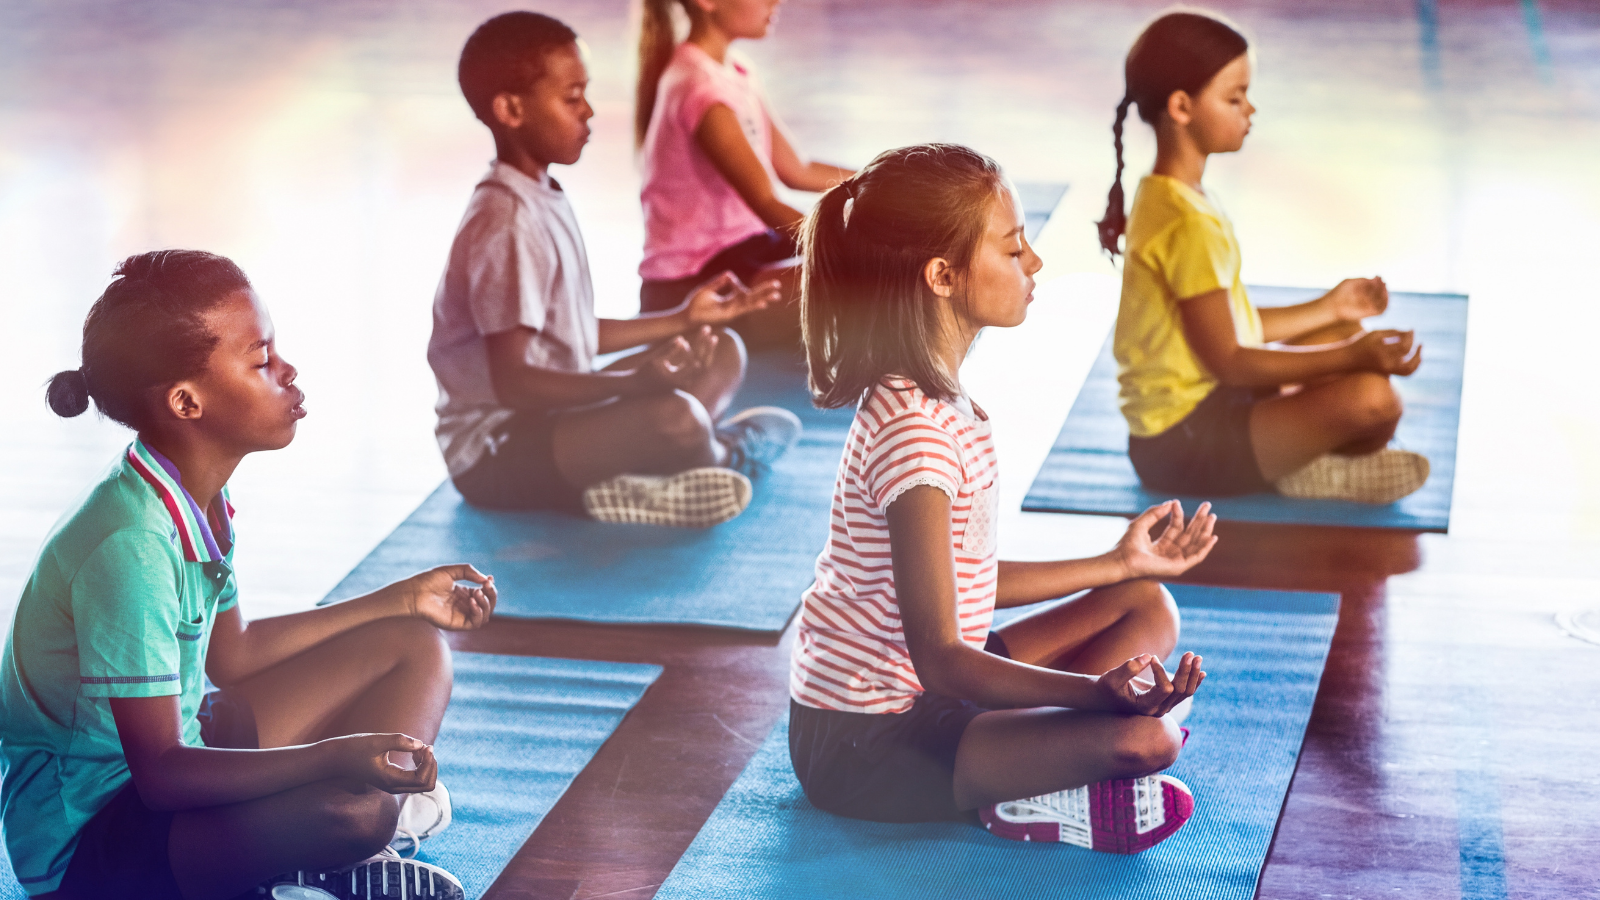 Kids in yoga class experiencing the benefits of yoga on their general ease and calm